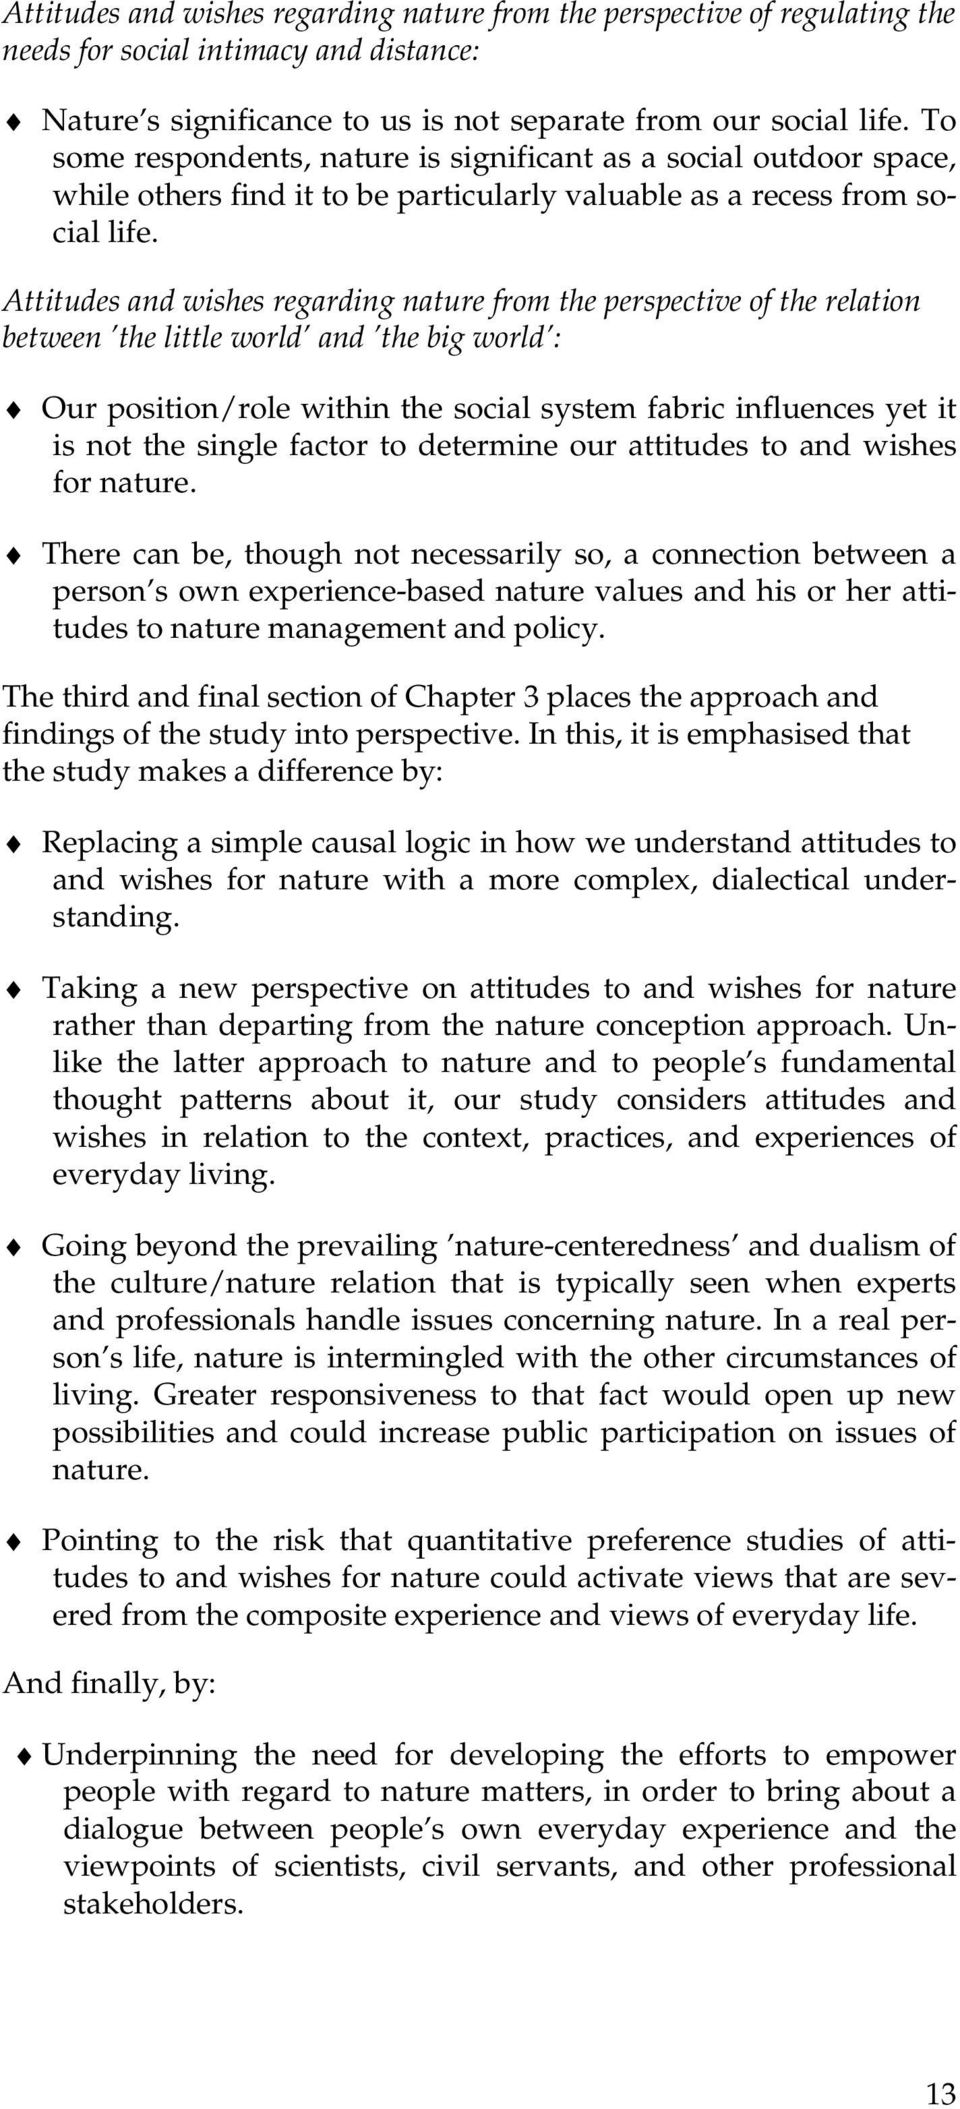 Attitudes and wishes regarding nature from the perspective of the relation between the little world and the big world : Our position/role within the social system fabric influences yet it is not the